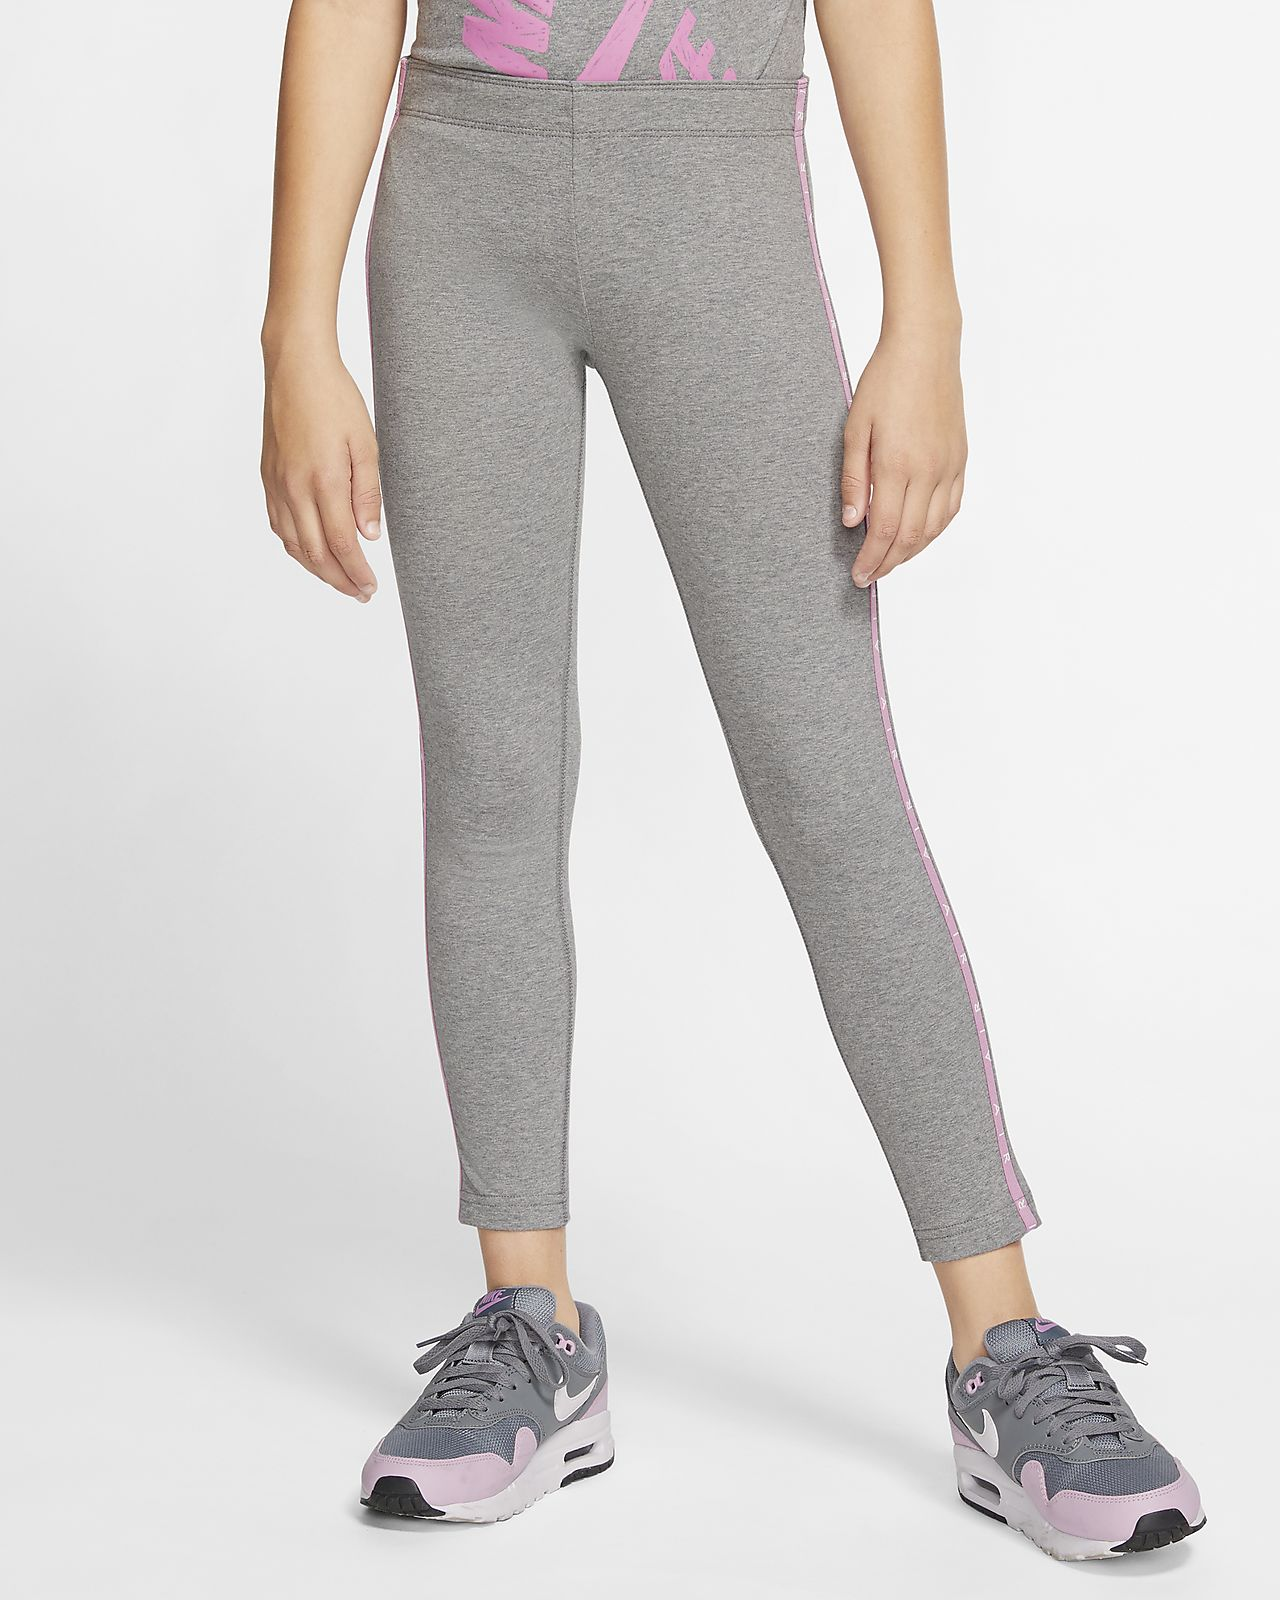 Nike Air Older Kids' (Girls') Leggings